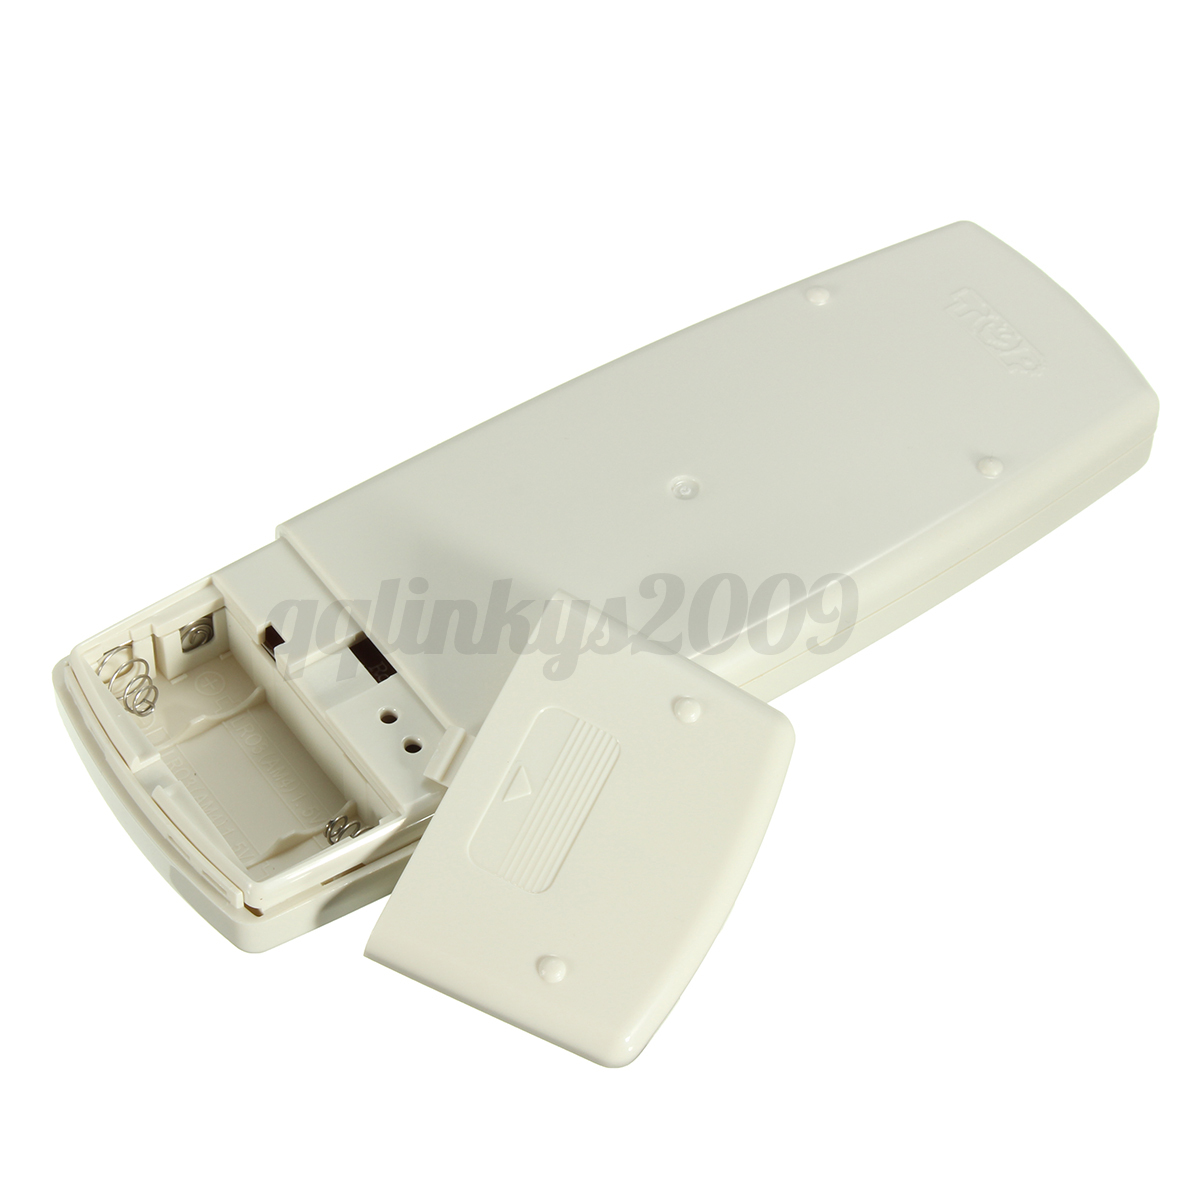 White-Air-Conditioner-Remote-Control-For-Carrier-RFL-0301-RFL-0301E-RFL-0601-New